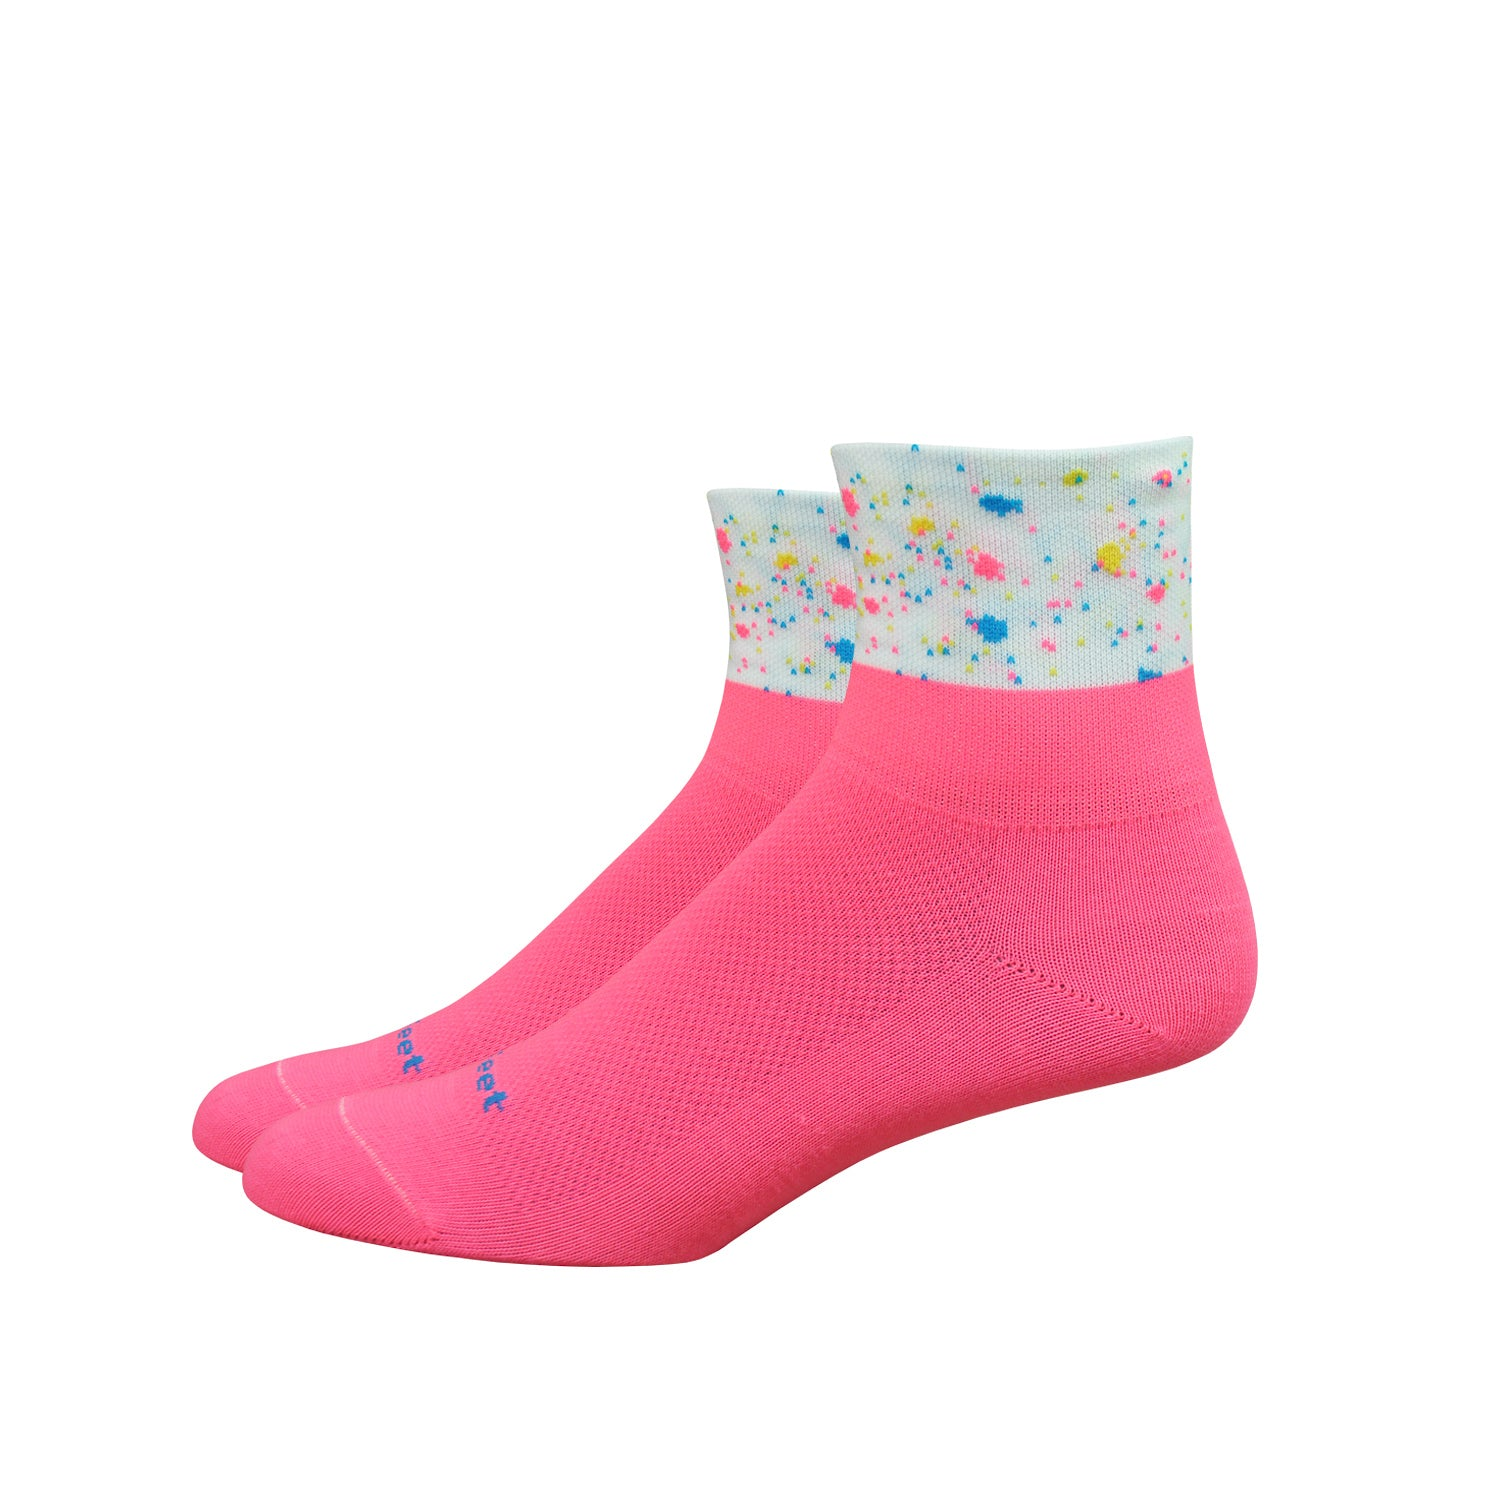 "Aireator Women's 3"" Pop Sock"